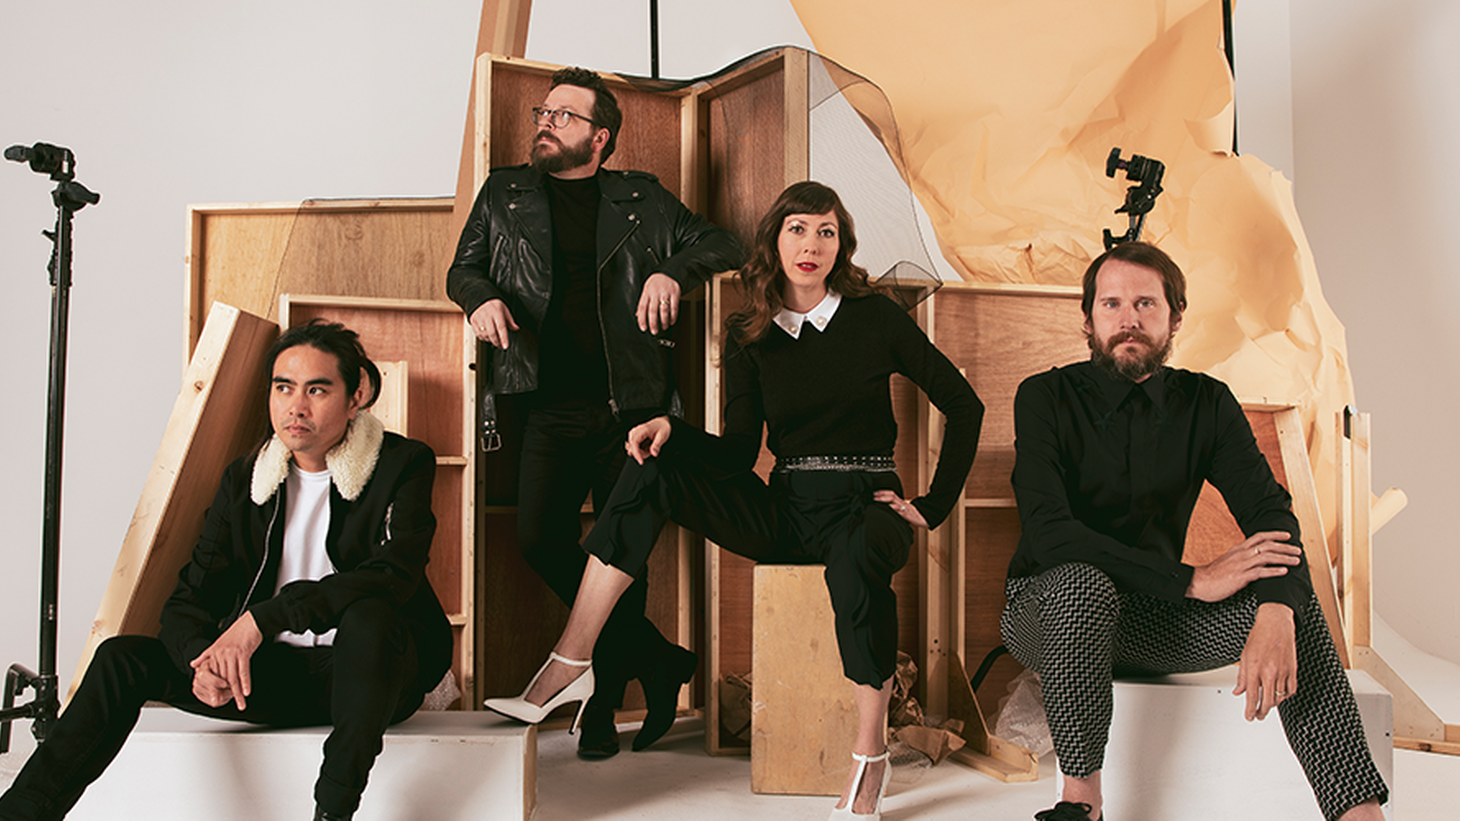 Celebrating rebirth and renewal, Silversun Pickups have been together for nearly 20 years.